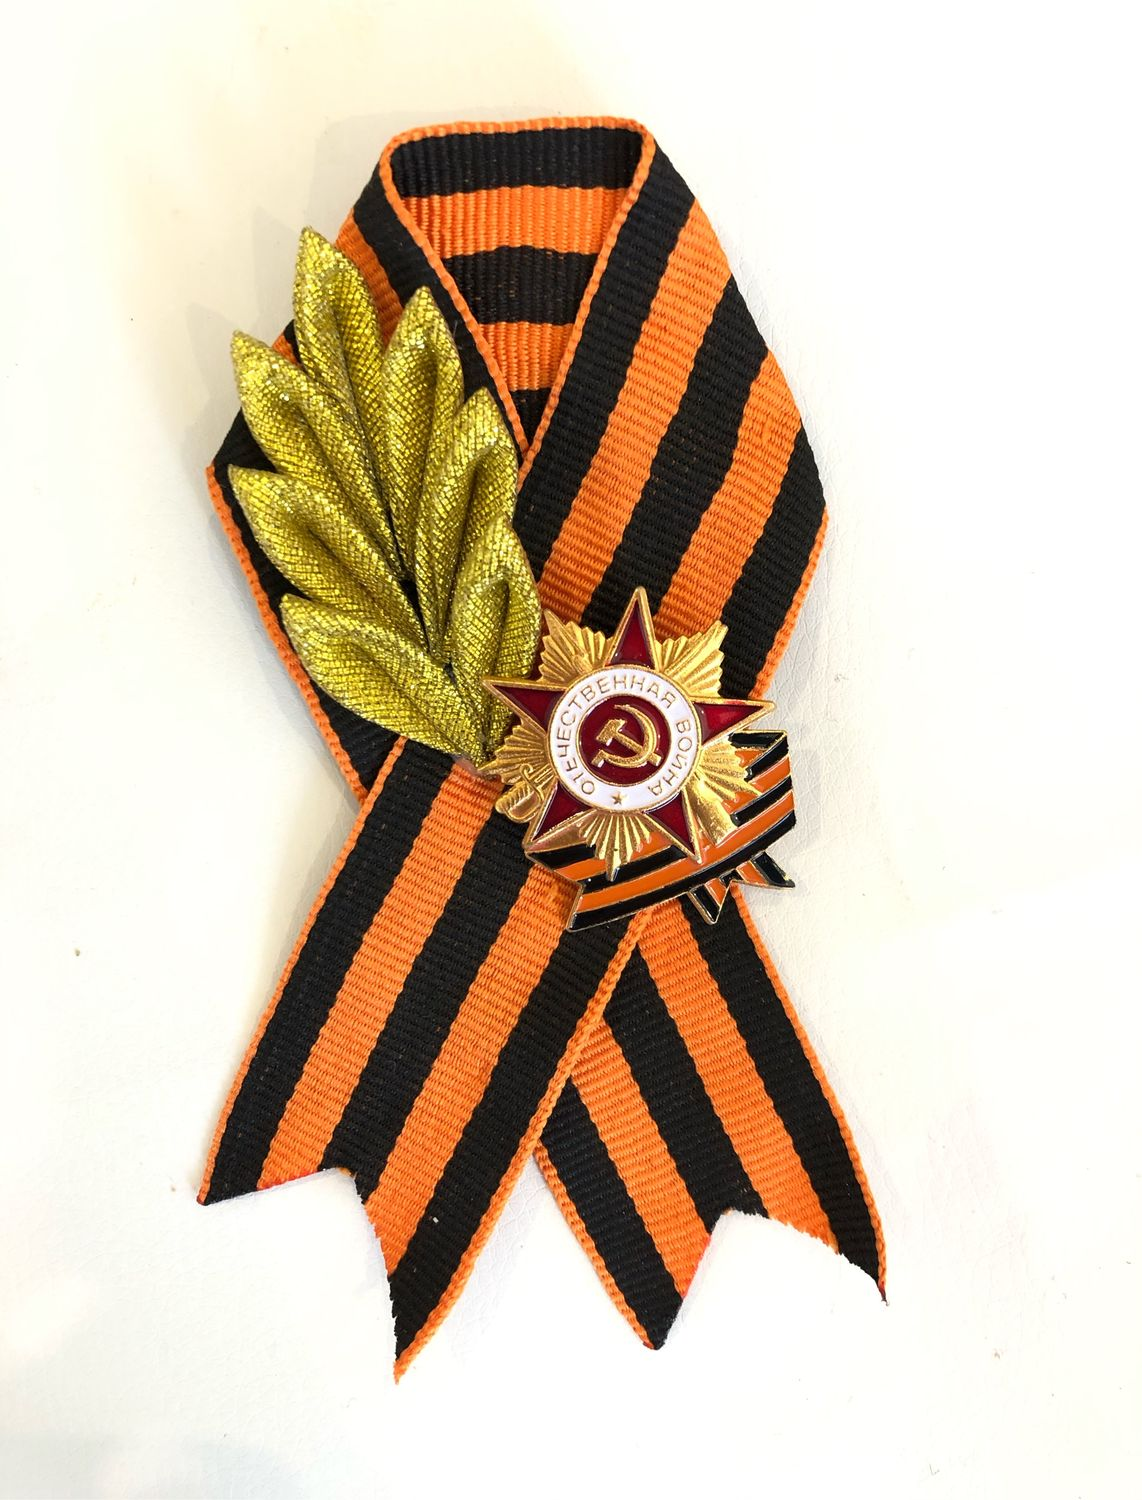 Brooch on may 9 a BRANCH with THE badge ORDER of the second world war, Brooches, Moscow,  Фото №1